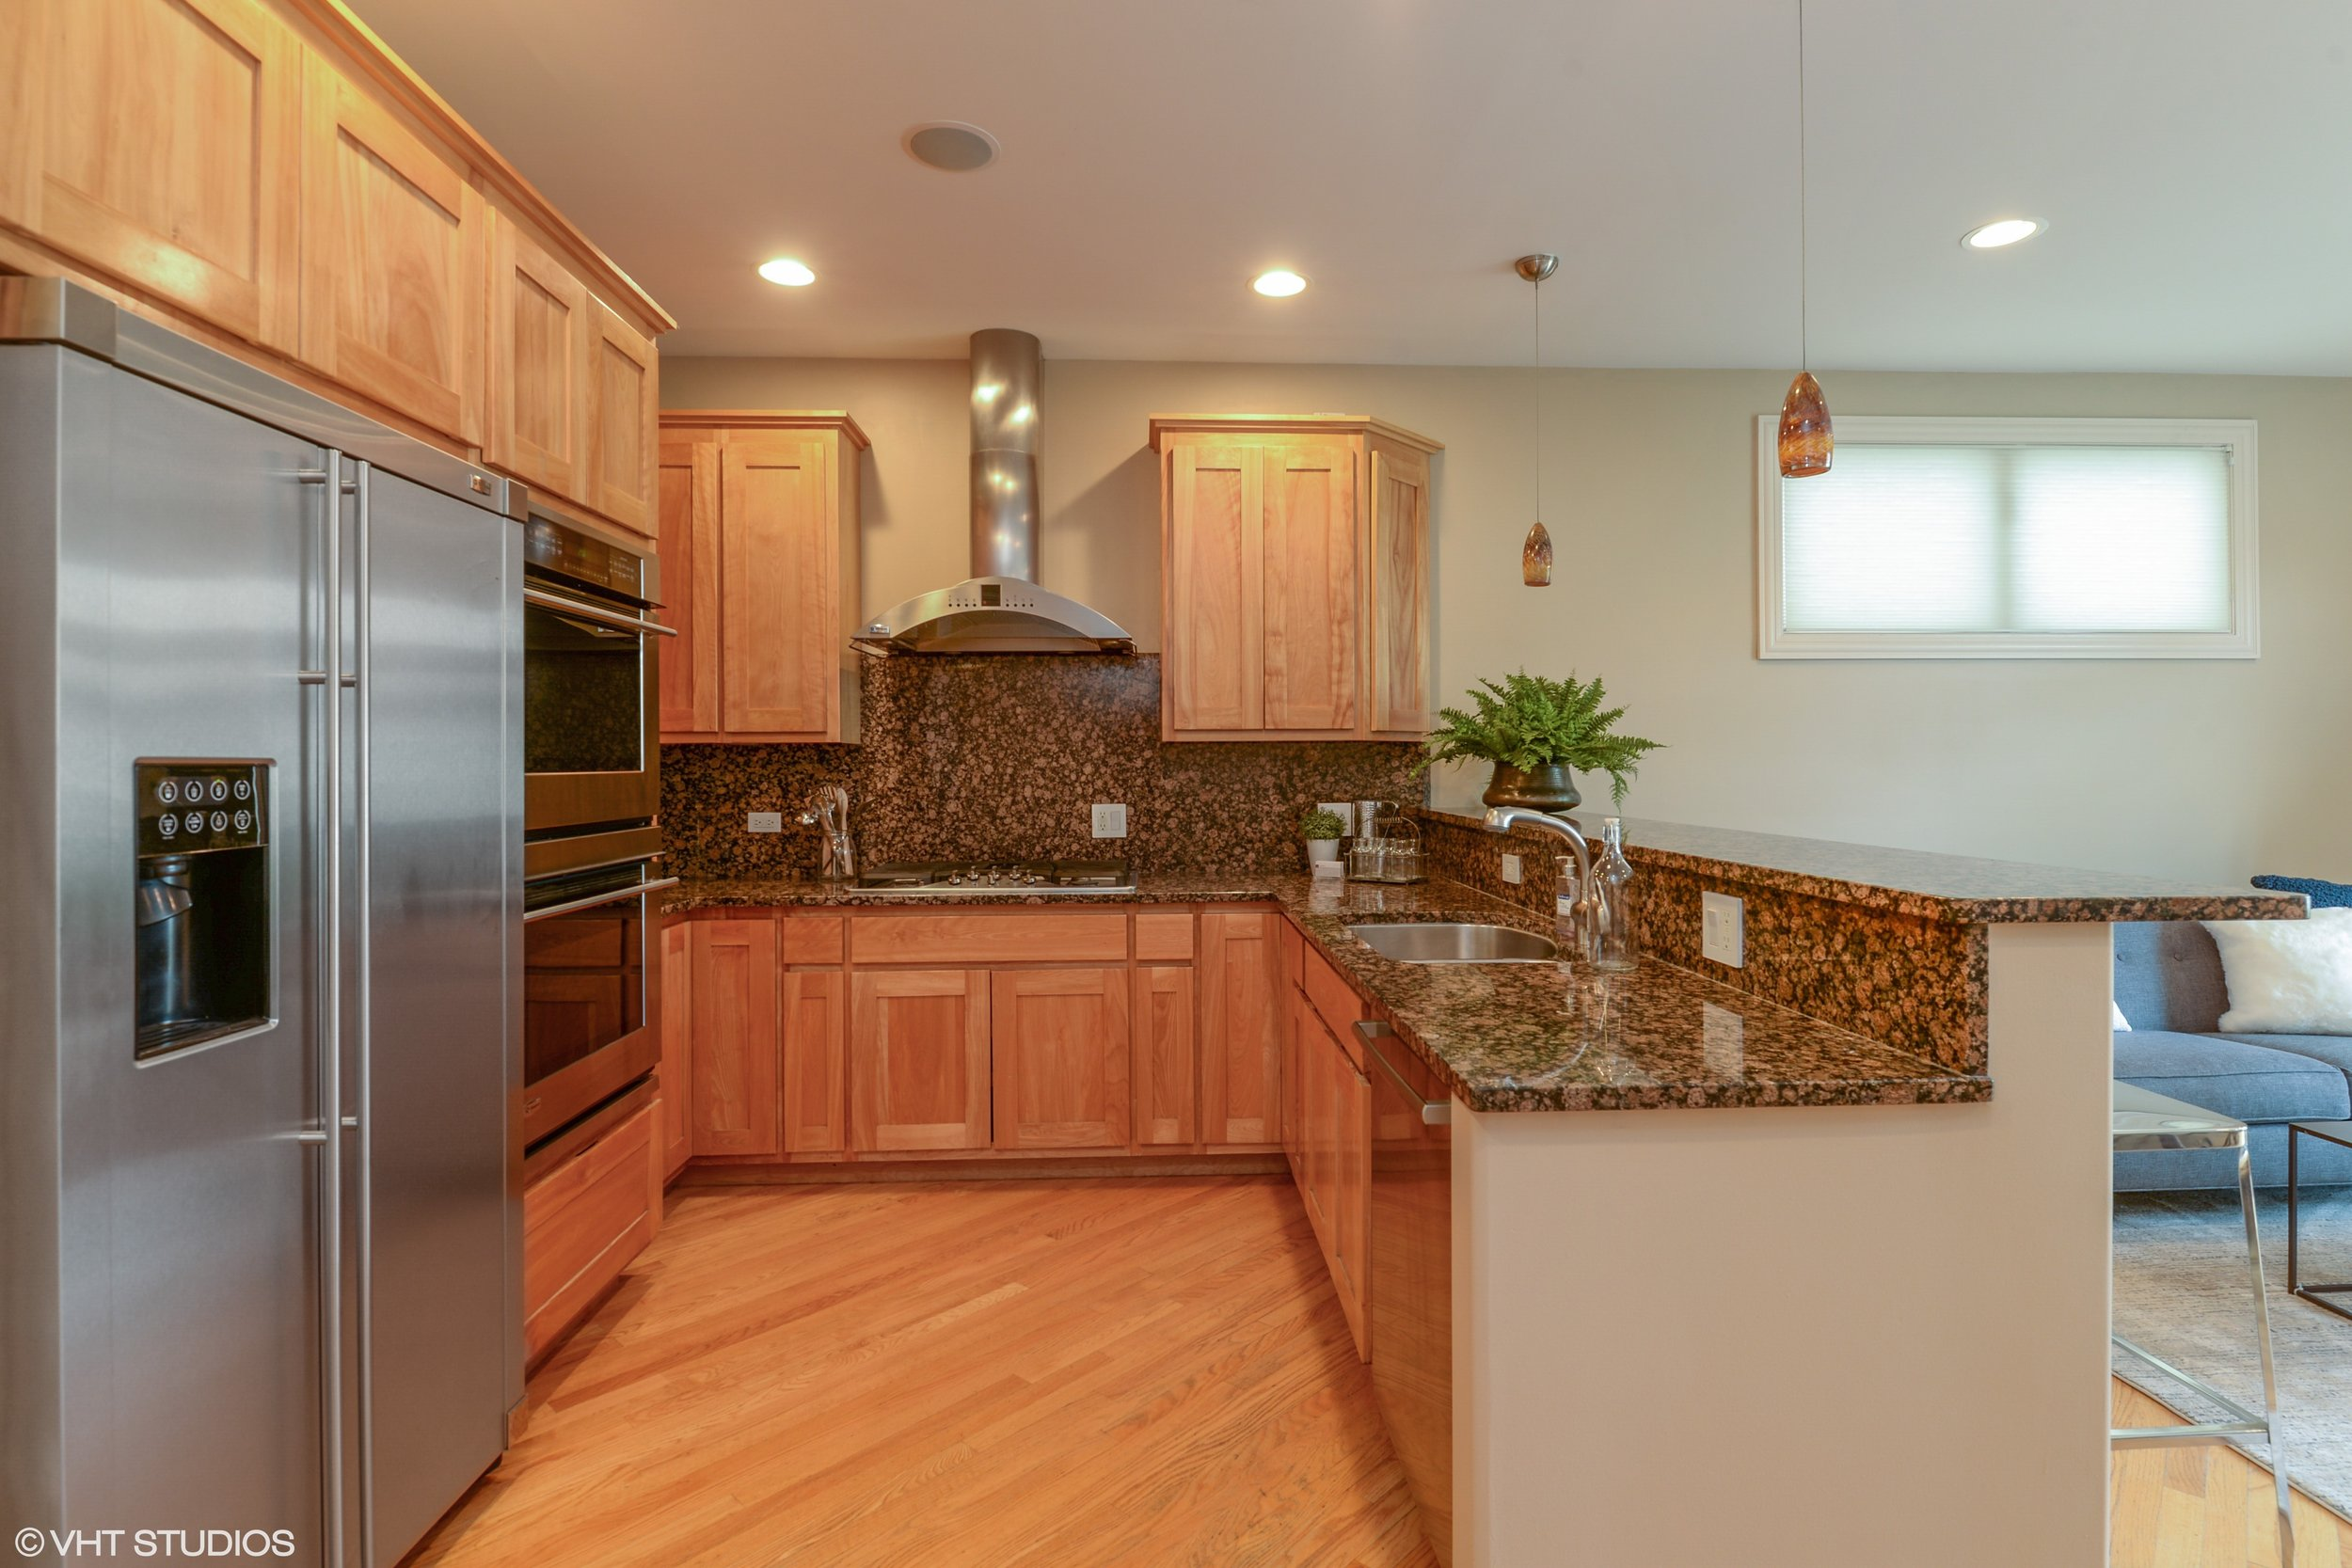 05_2041NWhipple_5_Kitchen_HiRes.jpg